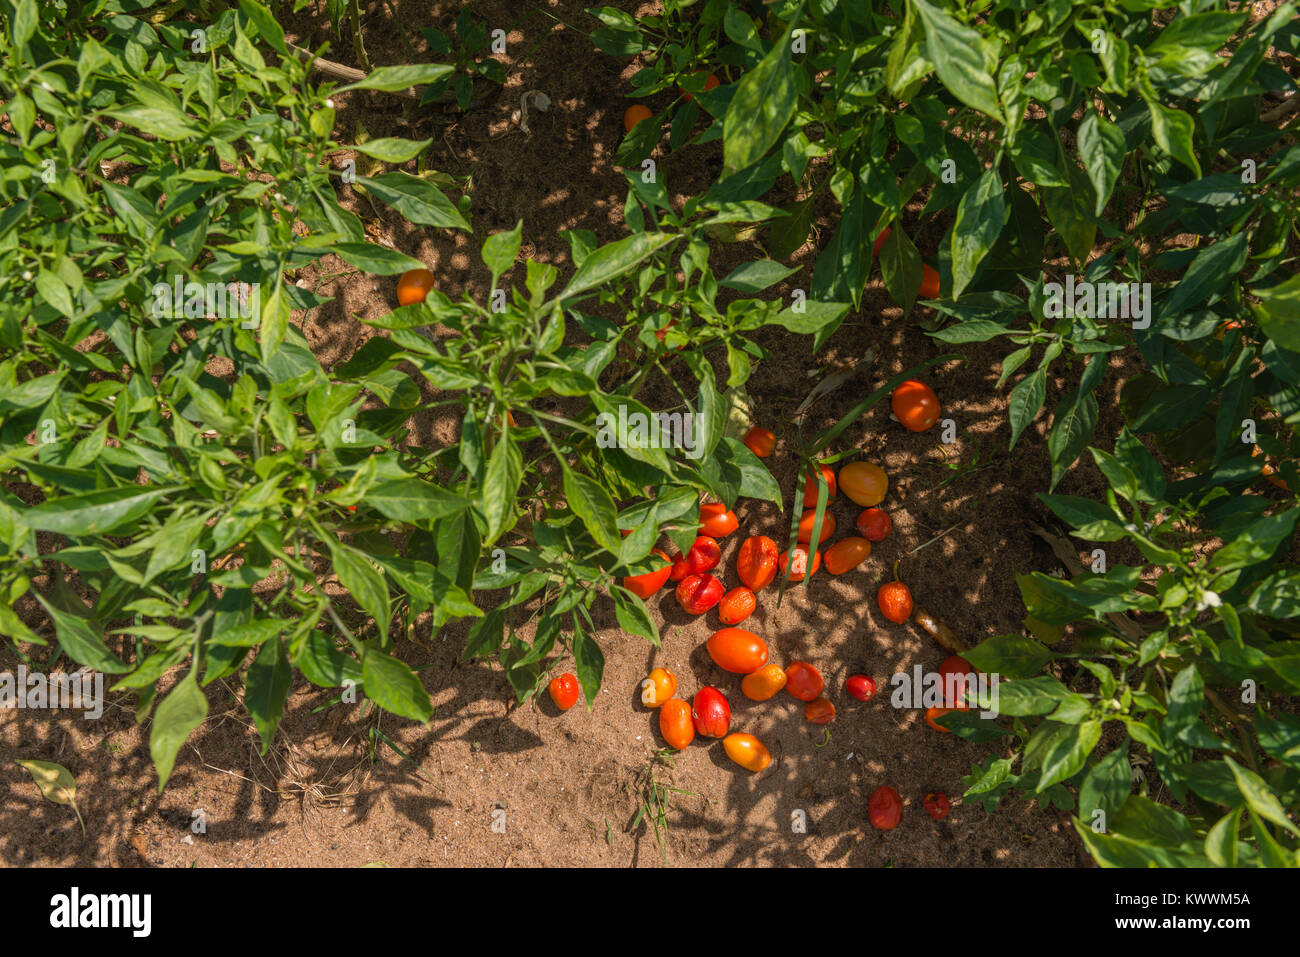 Plants of red pepper, Anloga, Volta Region, Ghana, Africa - Stock Image